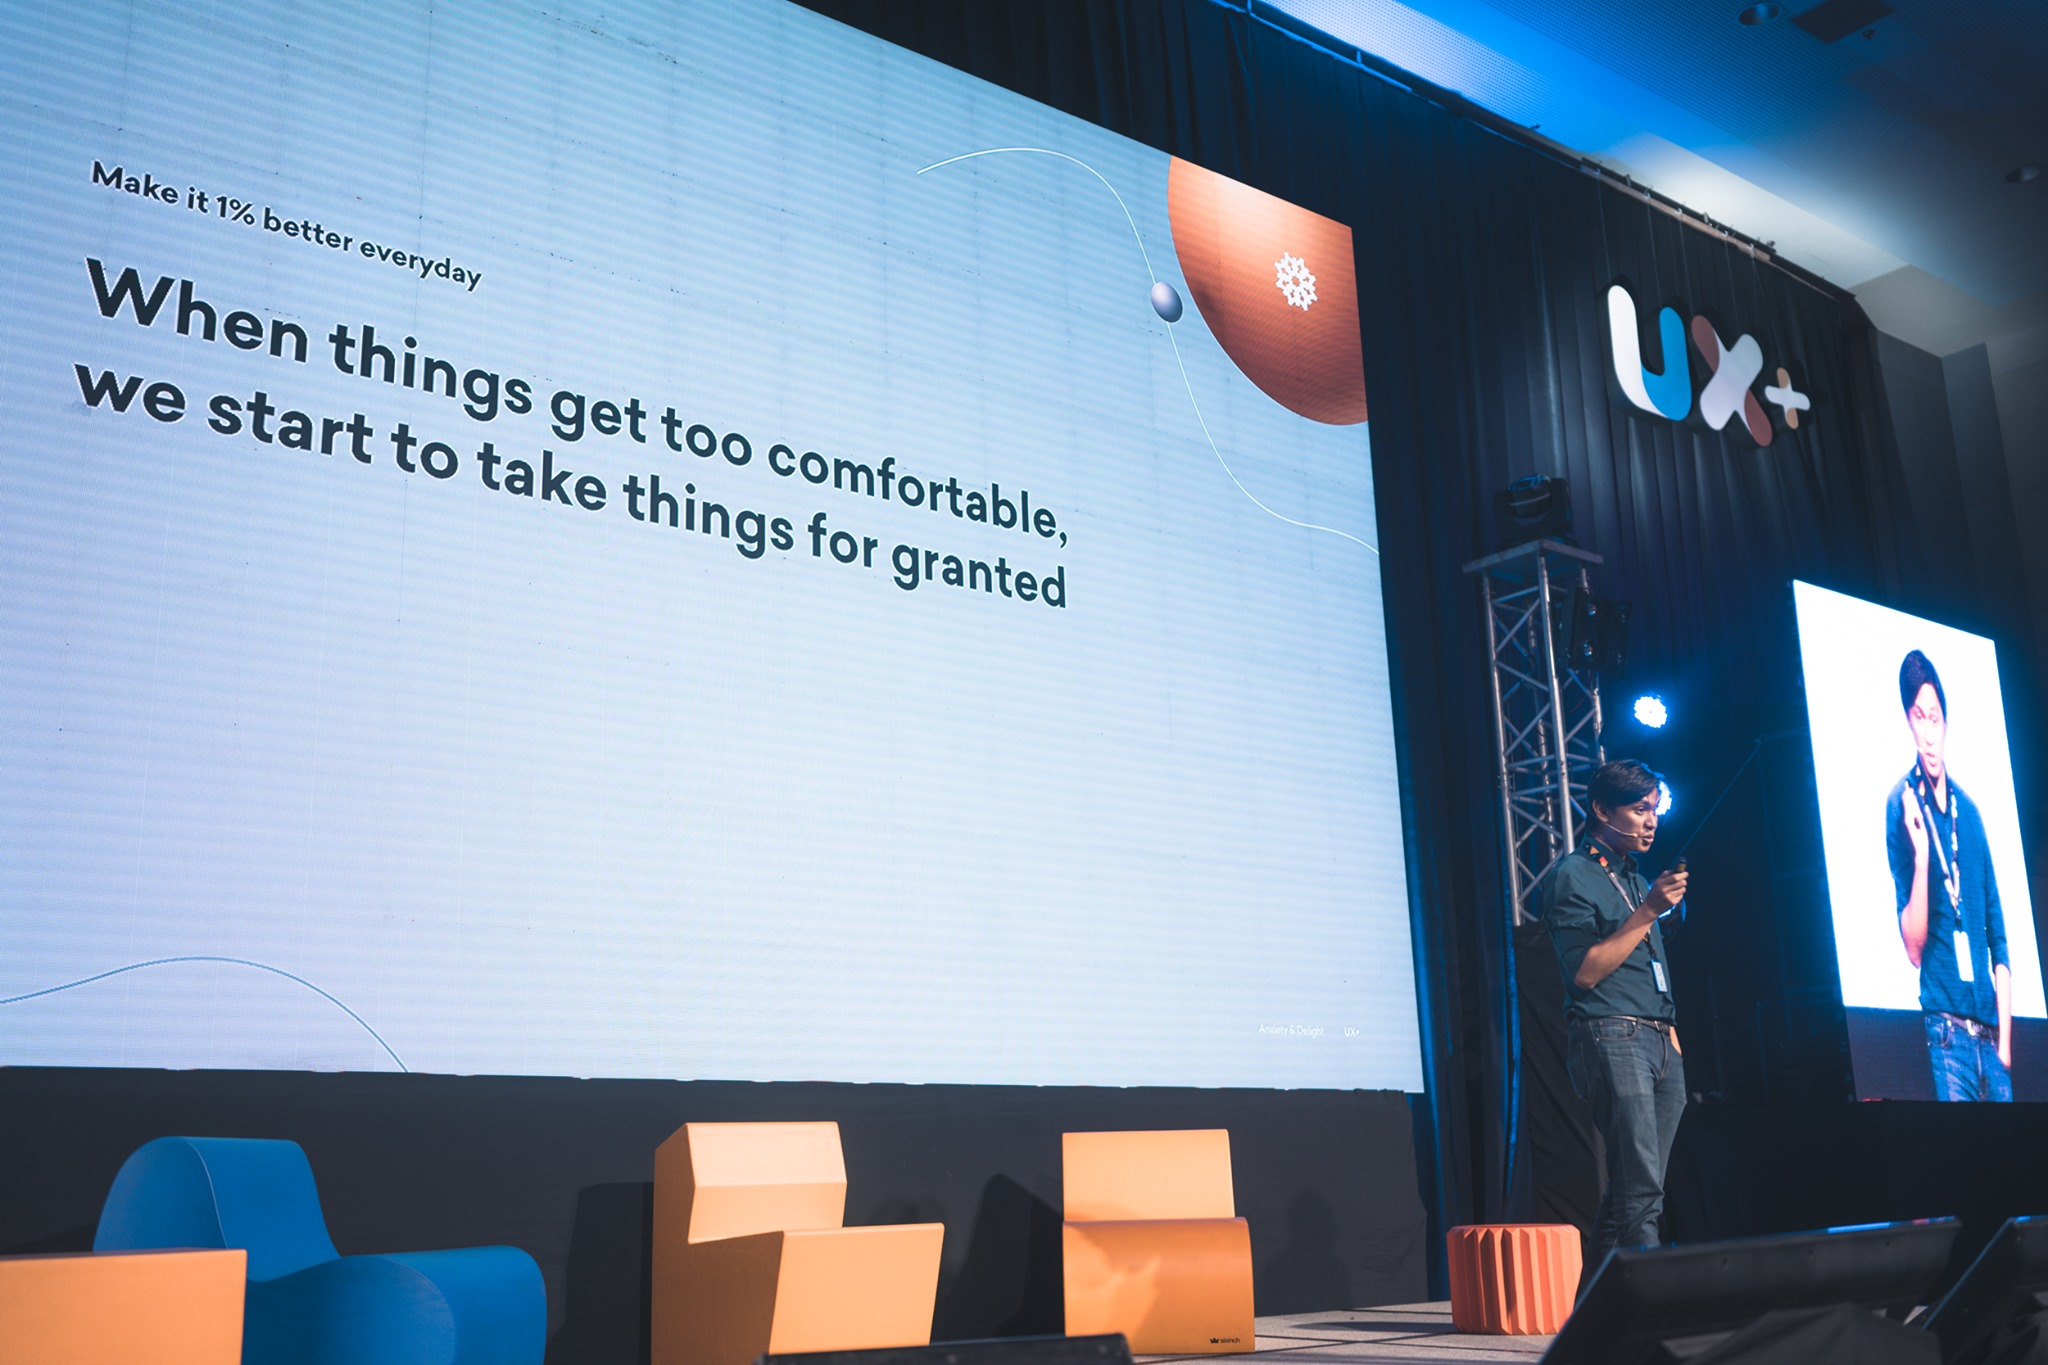 User Experience Conference - UX 2019 - JP De Guzman - Anxiety, Delight, and Hicks